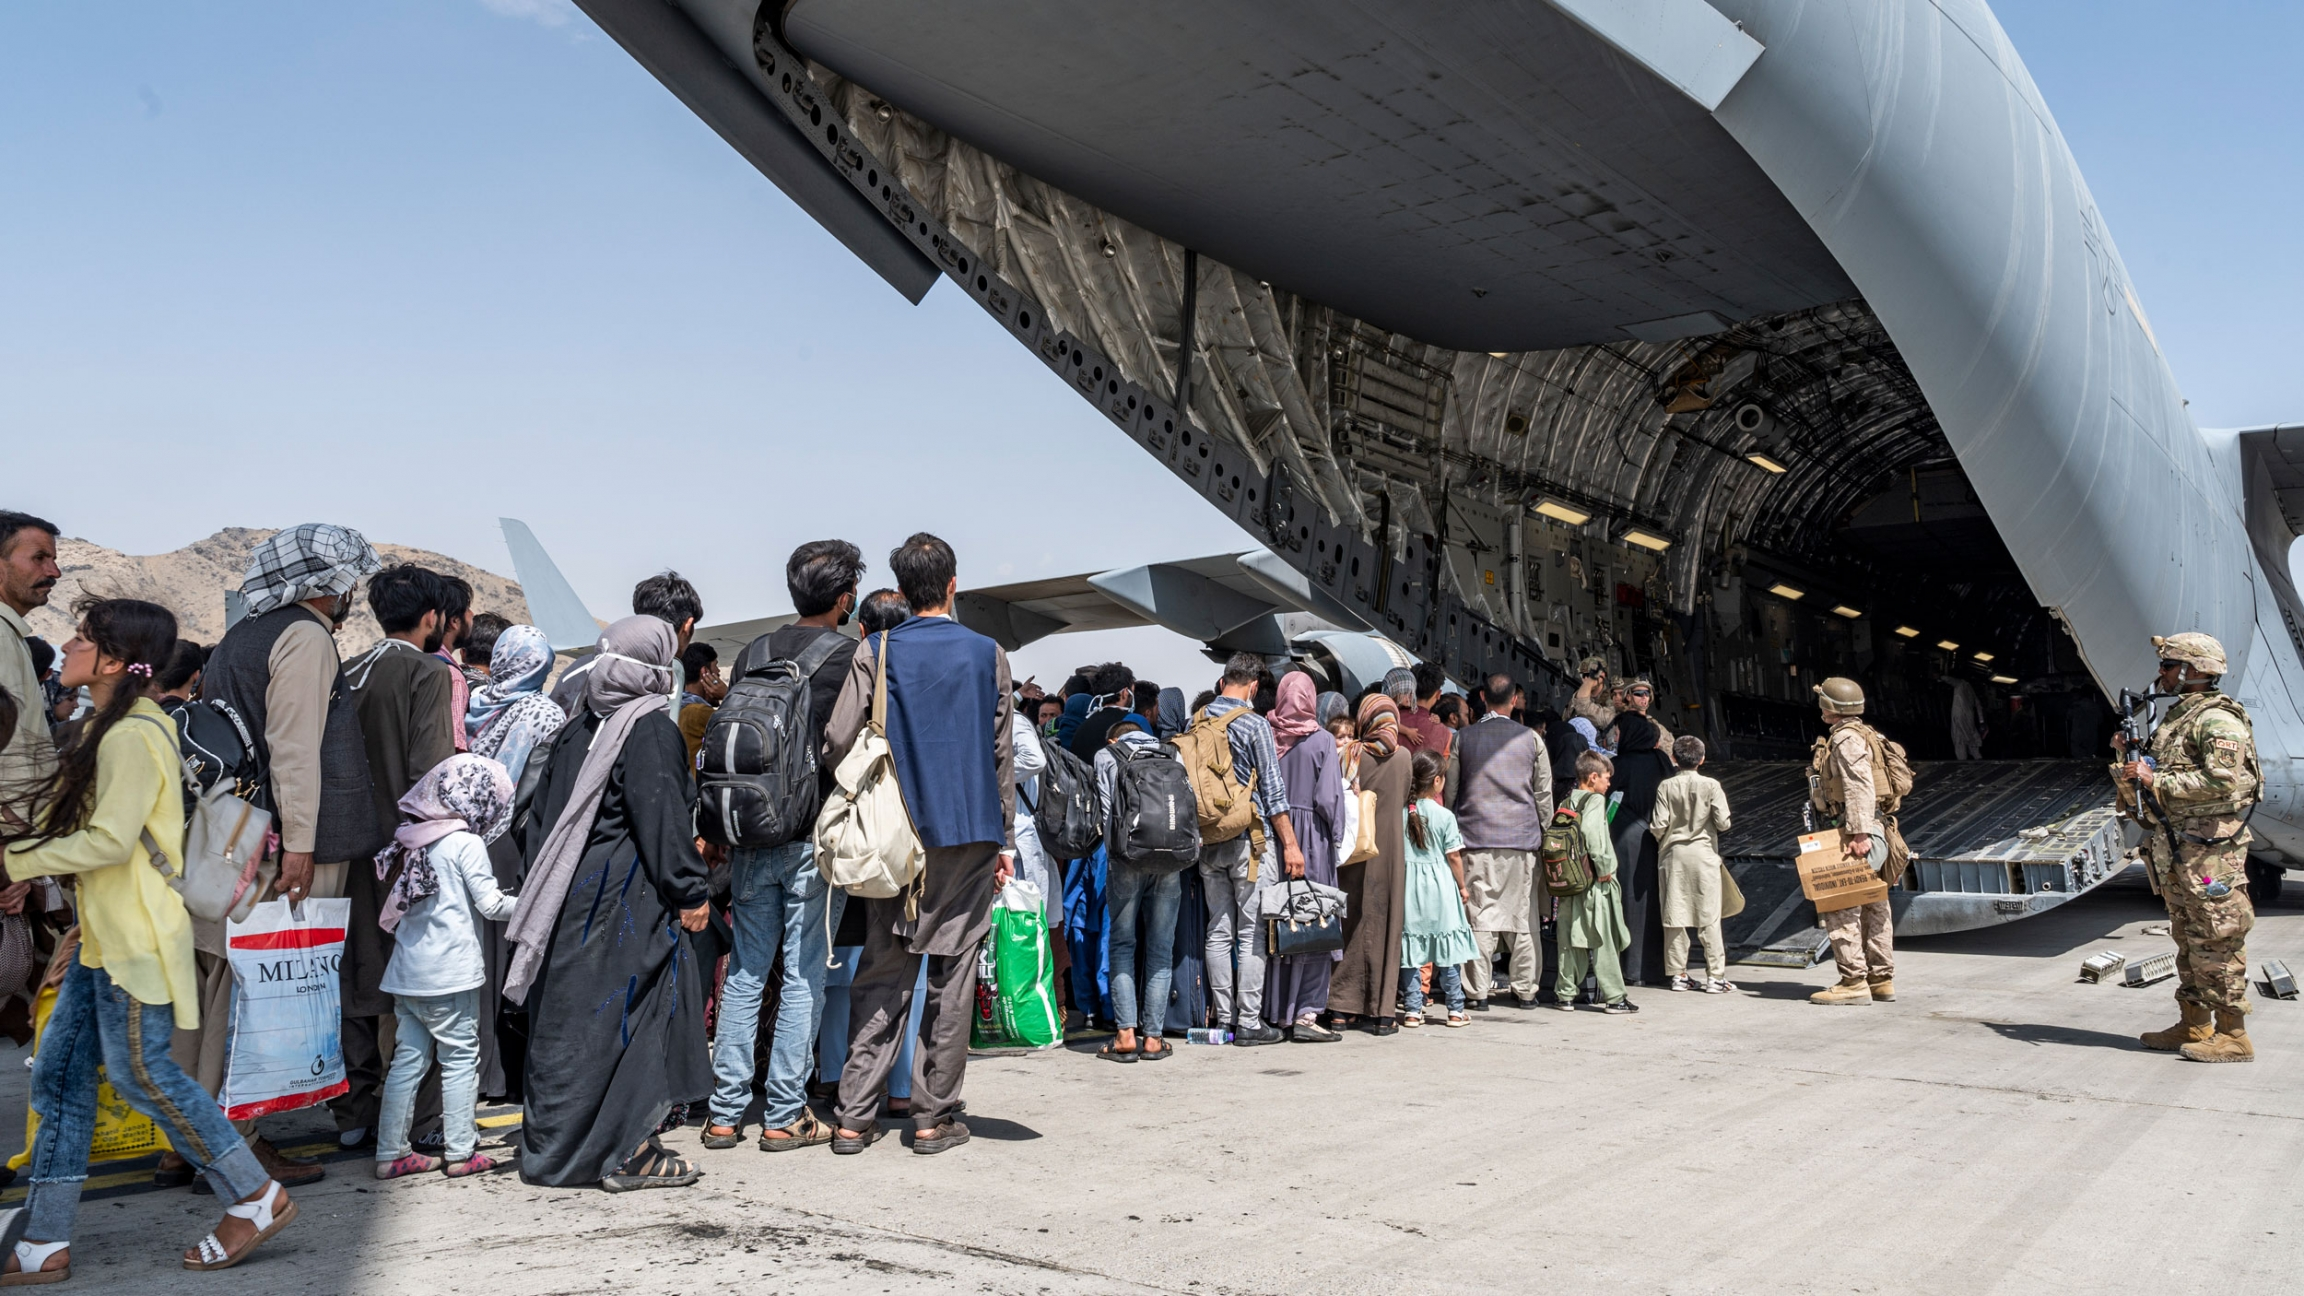 In this Aug. 21, 2021, image provided by the U.S. Air Force, US Airmen and U.S. Marines guide evacuees aboard a U.S. Air Force C-17 Globemaster III in support of the Afghanistan evacuation at Hamid Karzai International Airport in Kabul, Afghanistan.